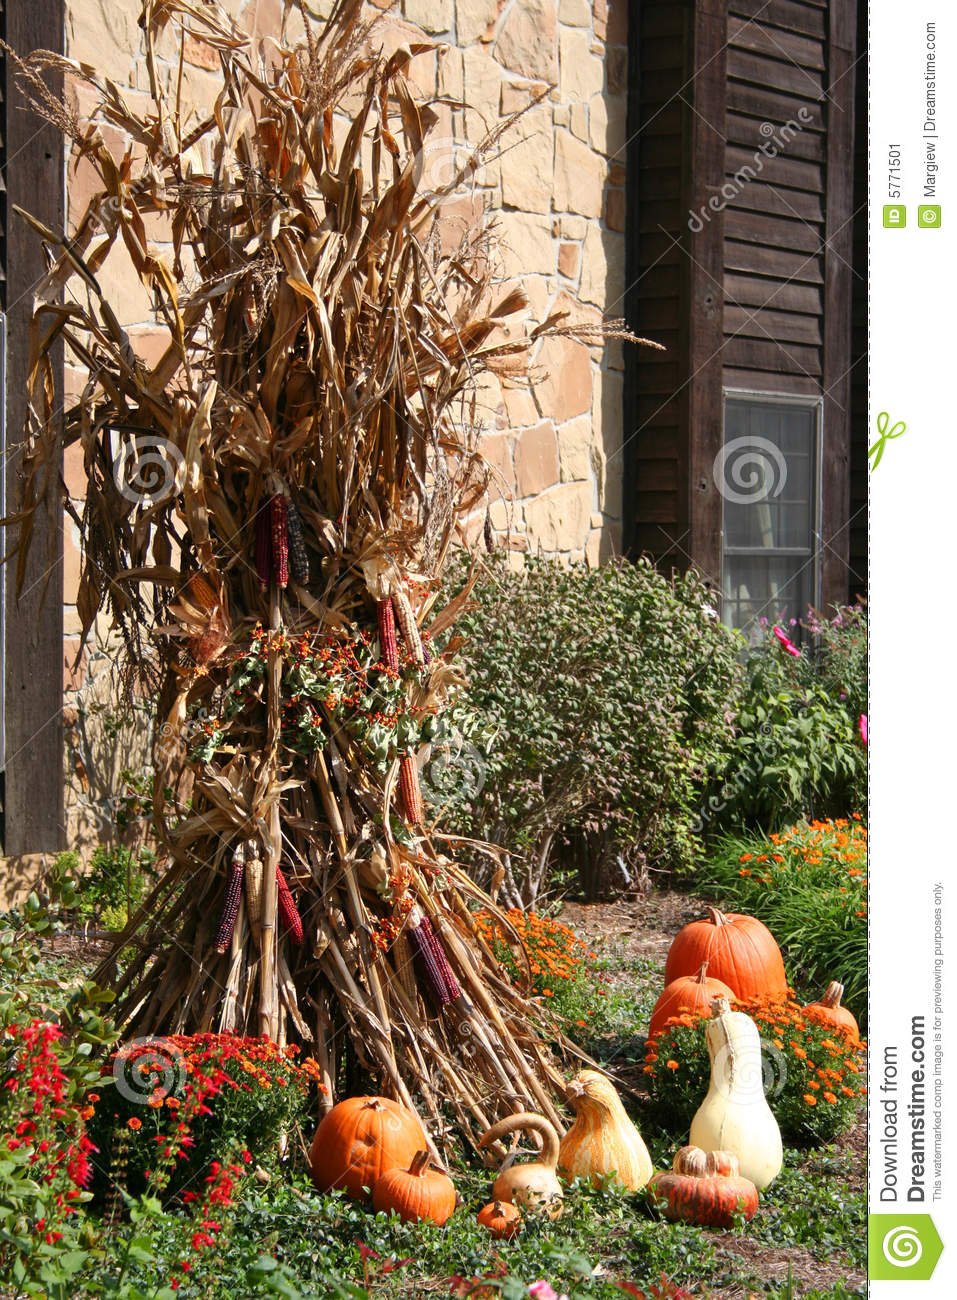 Harvest Yard Decor Stock Image Image 5771501